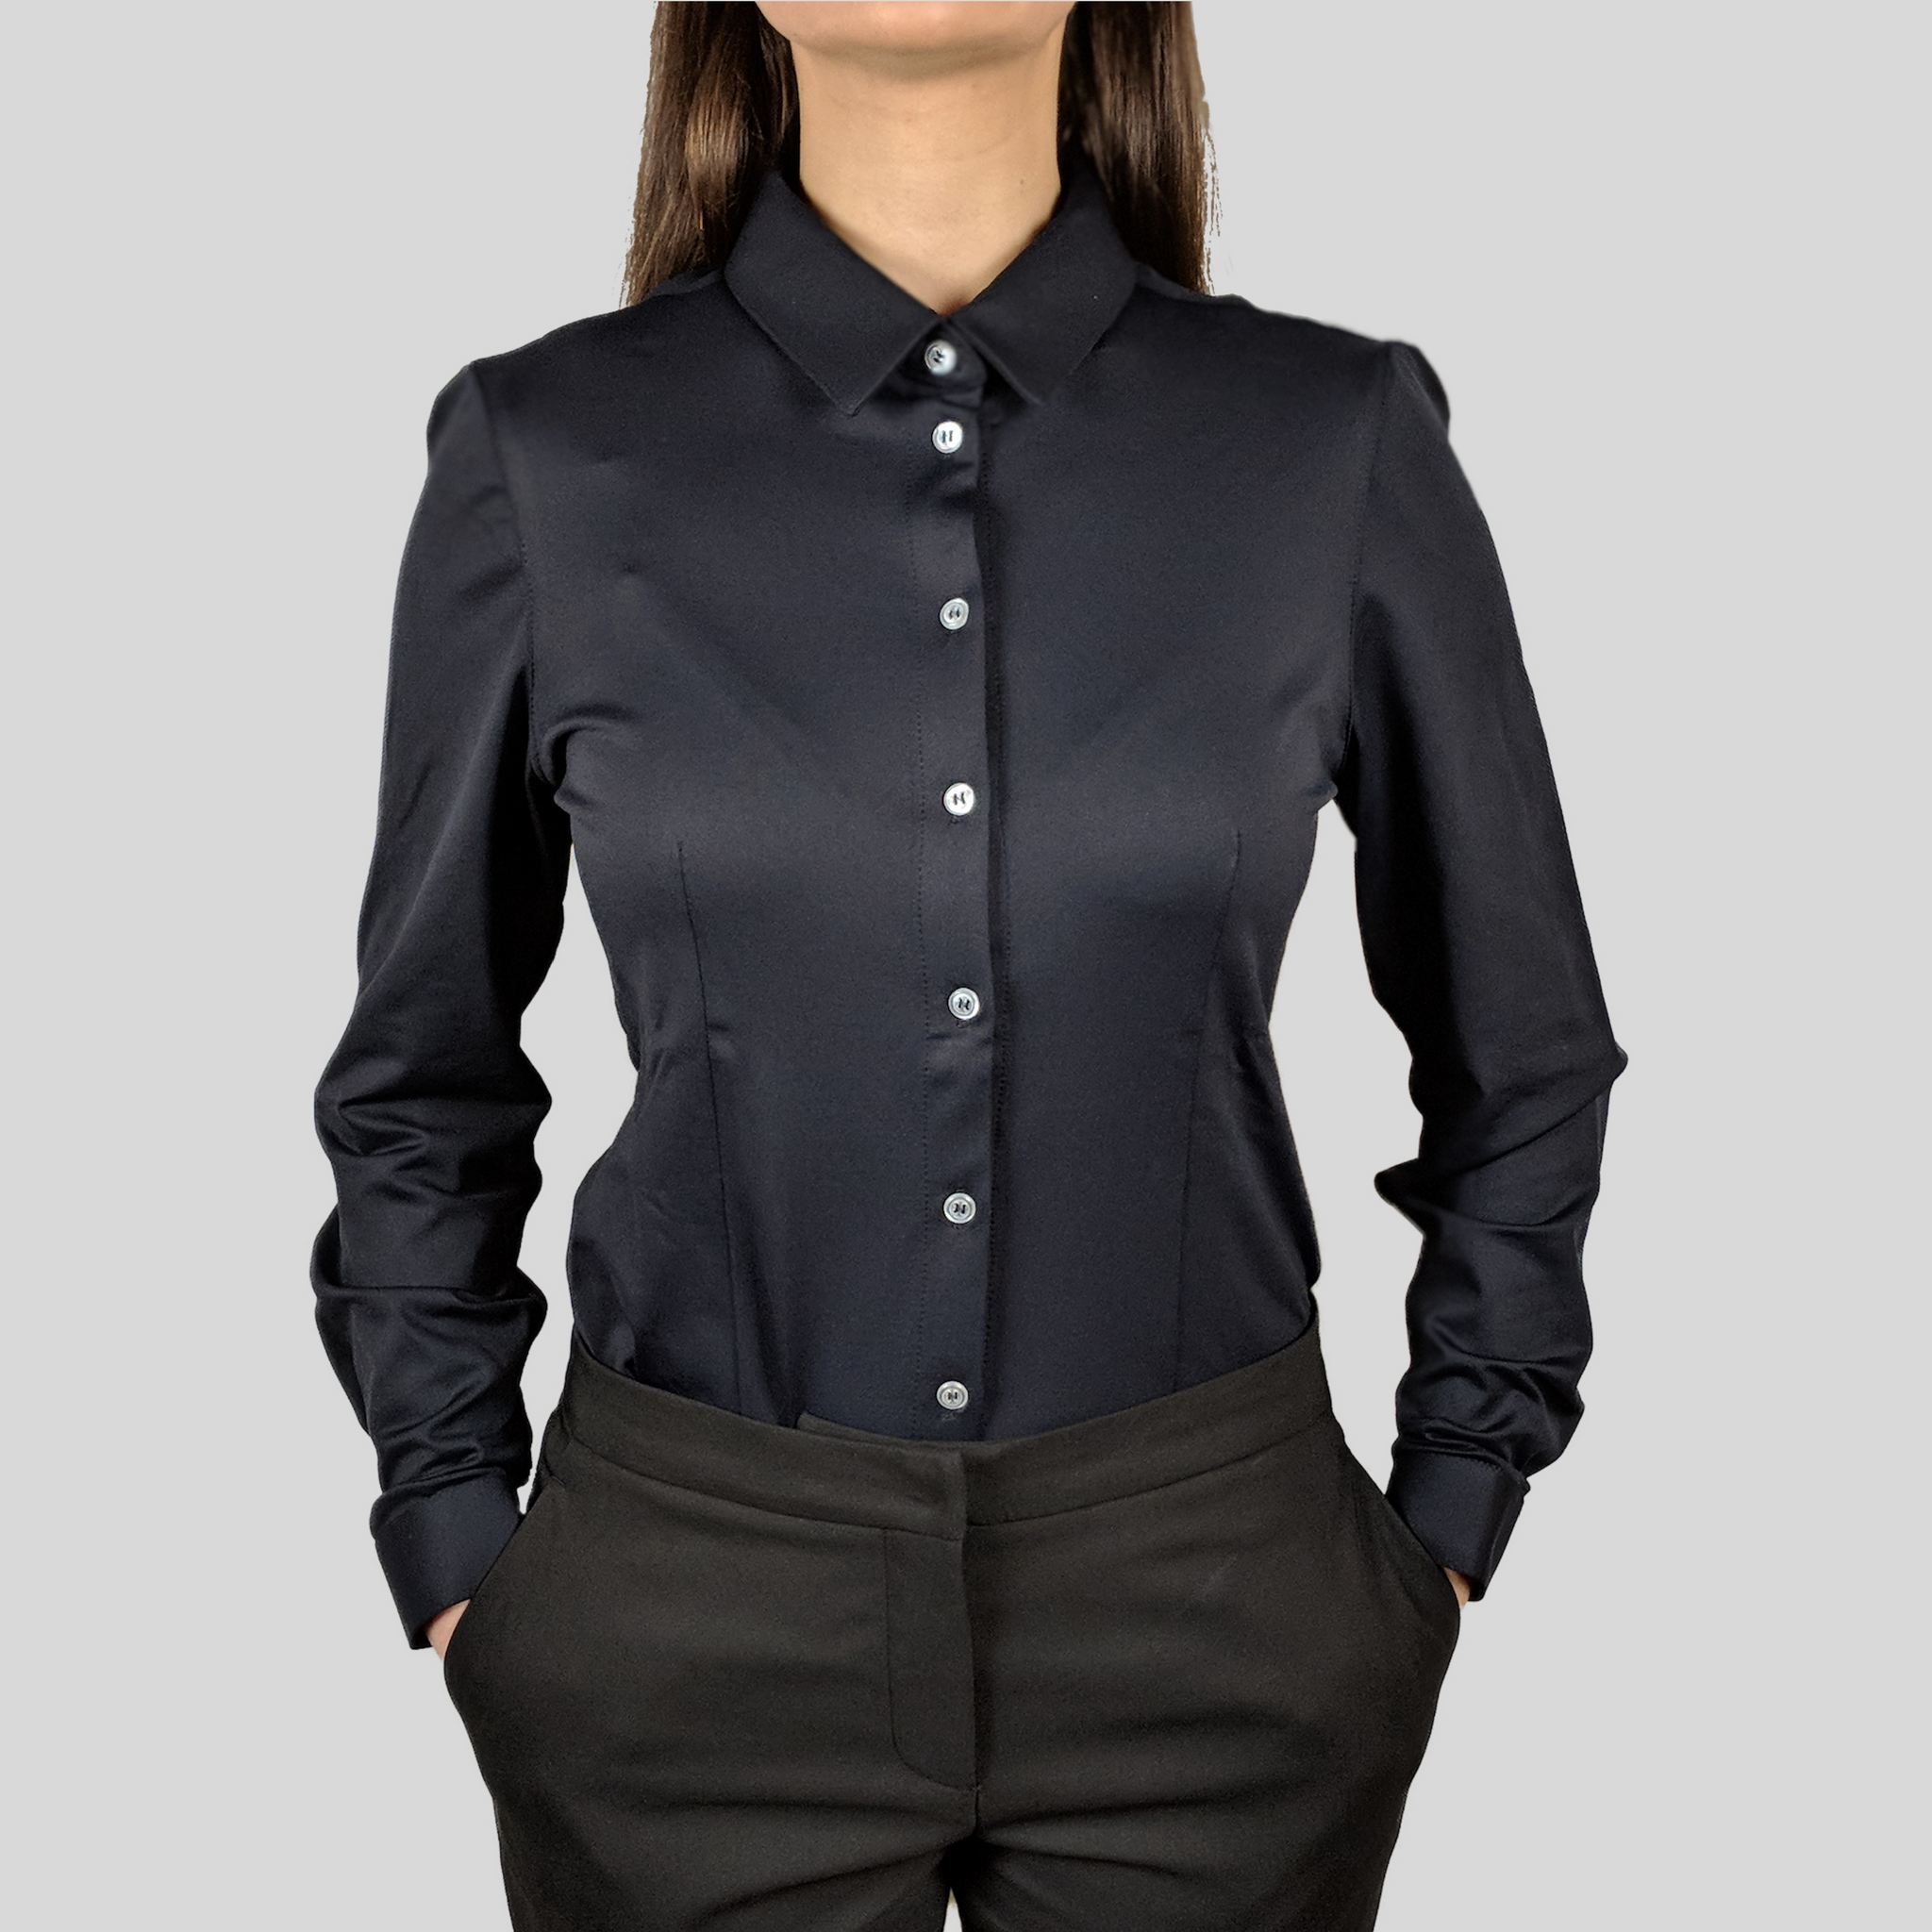 Origins Black for women dress shirt from advanced fabrics by DULO